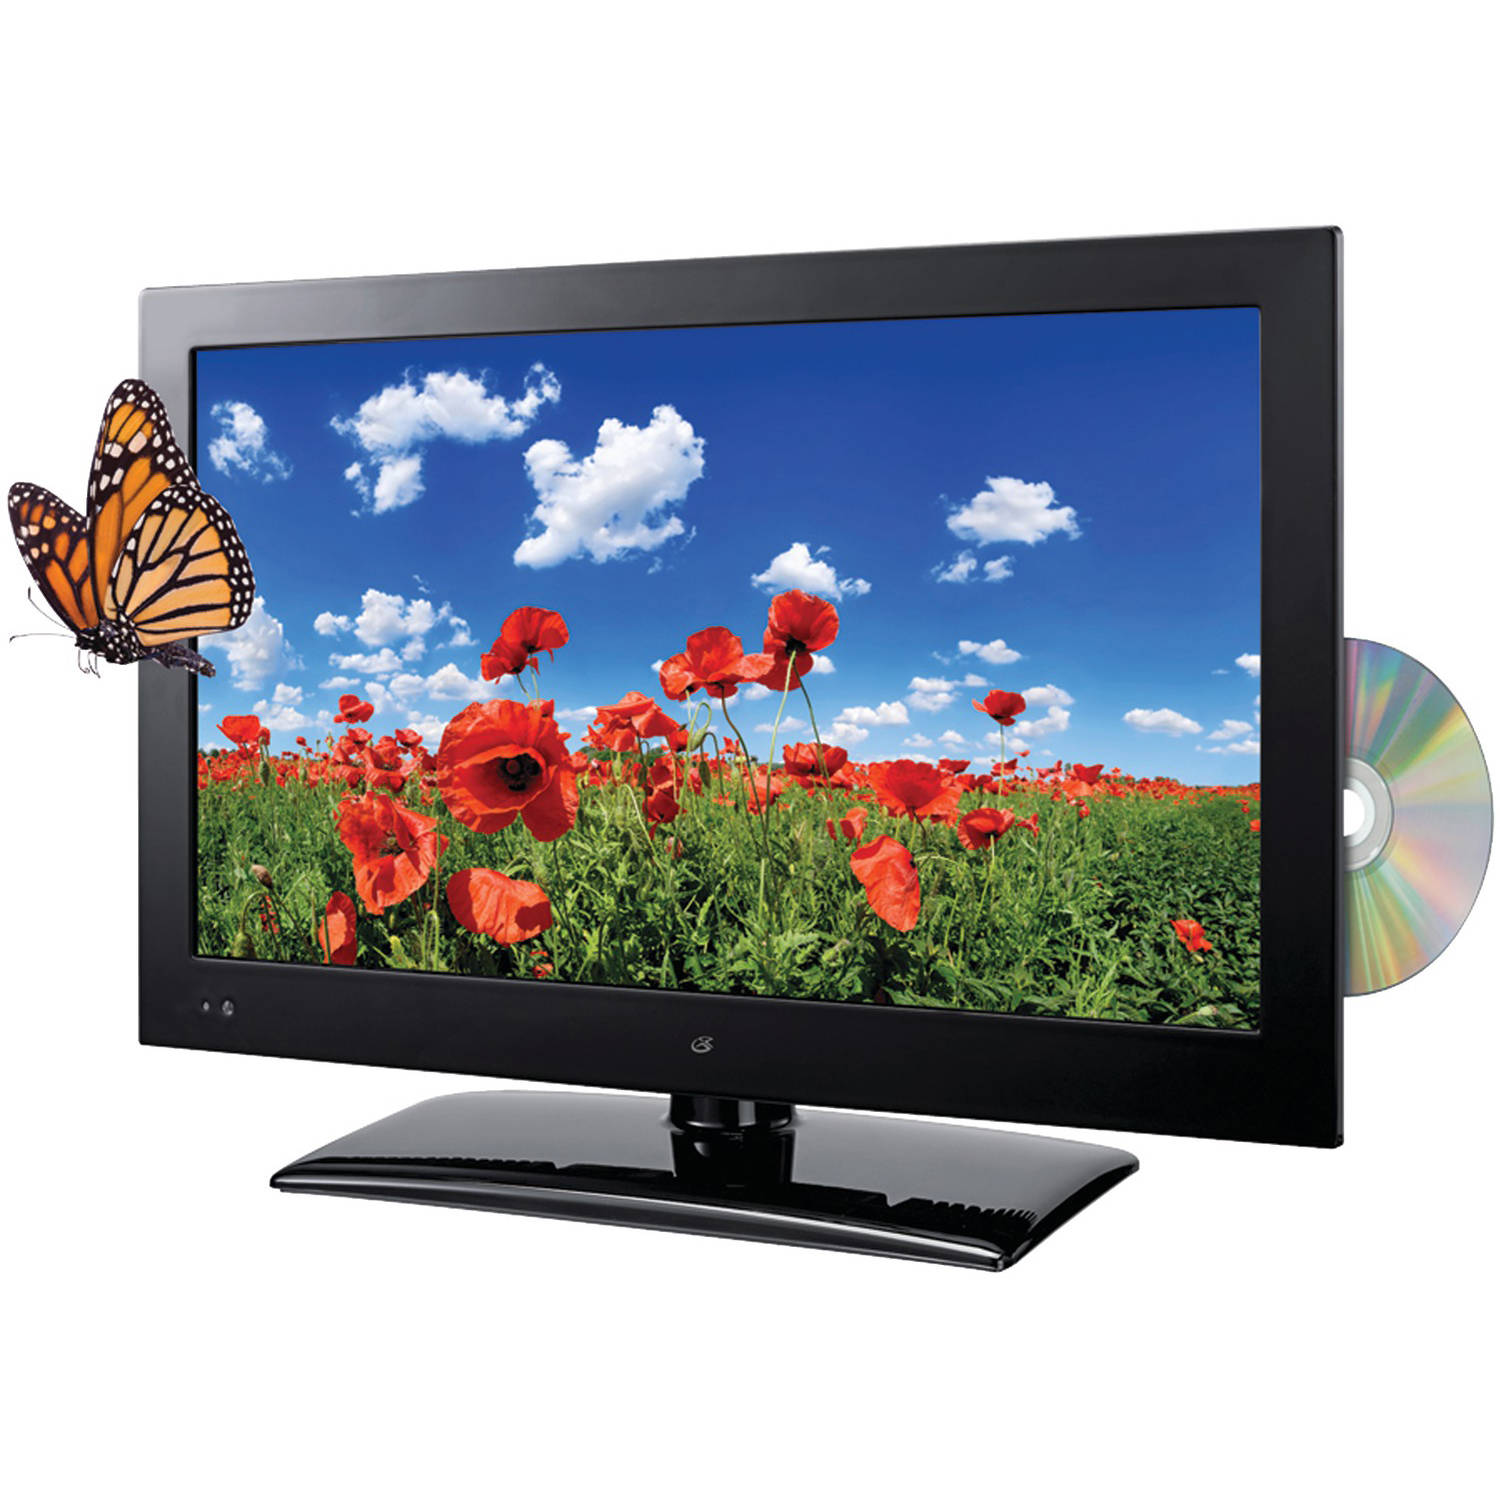 "GPX 22"" LED 1080p HDTV-DVD Combo TDE2282B by GPX"